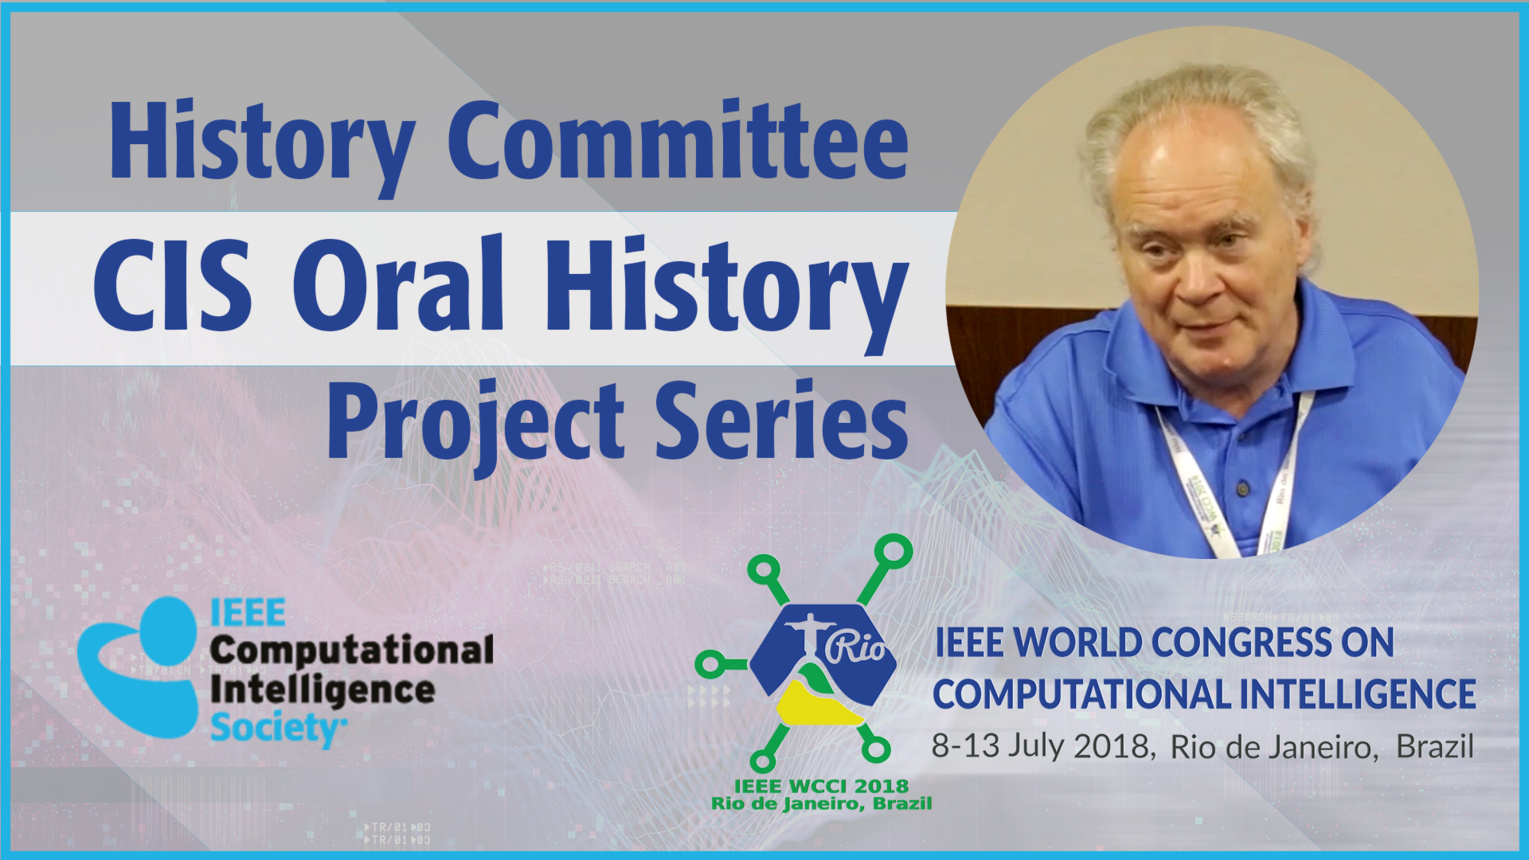 Paul Werbos: History Committee CIS Oral History Project Series